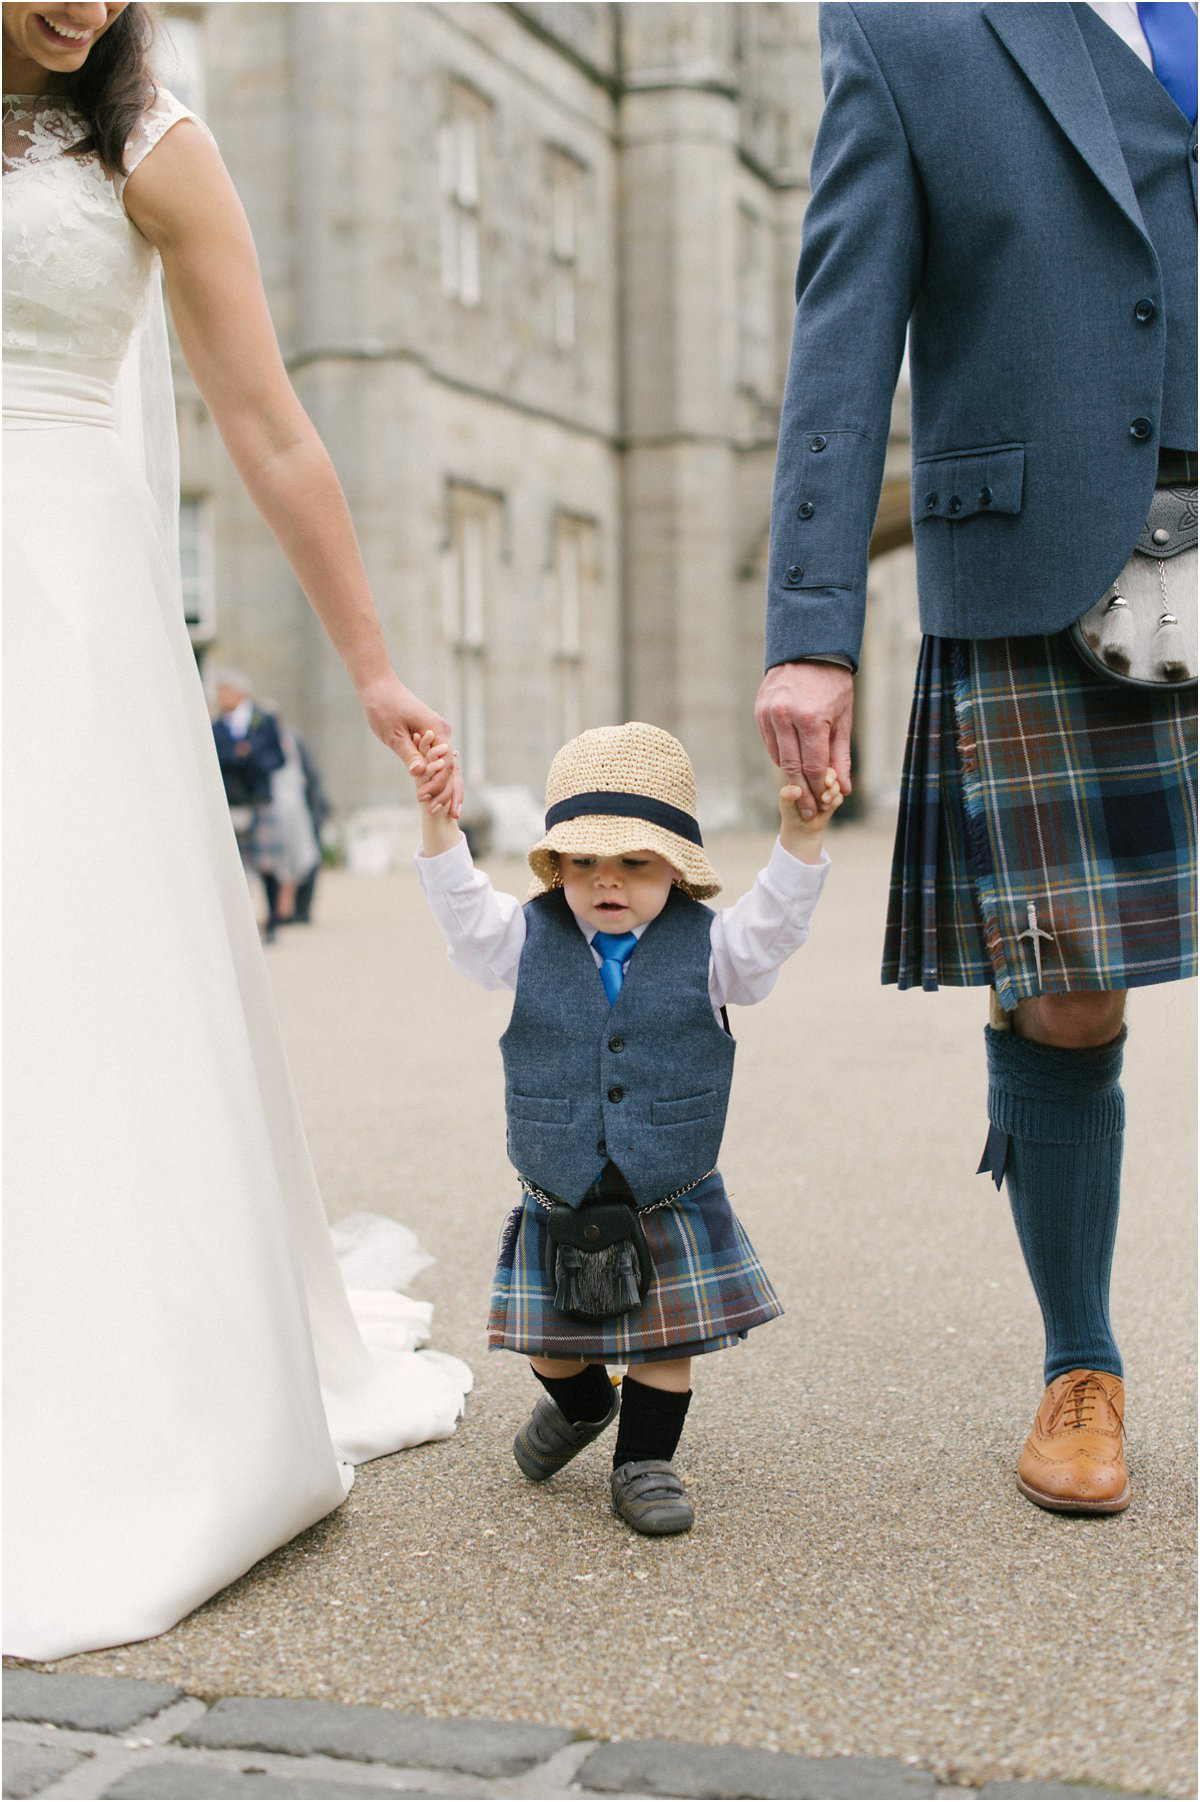 Newlyweds with their young child during their wedding in Blairquhan by Cro & Kow